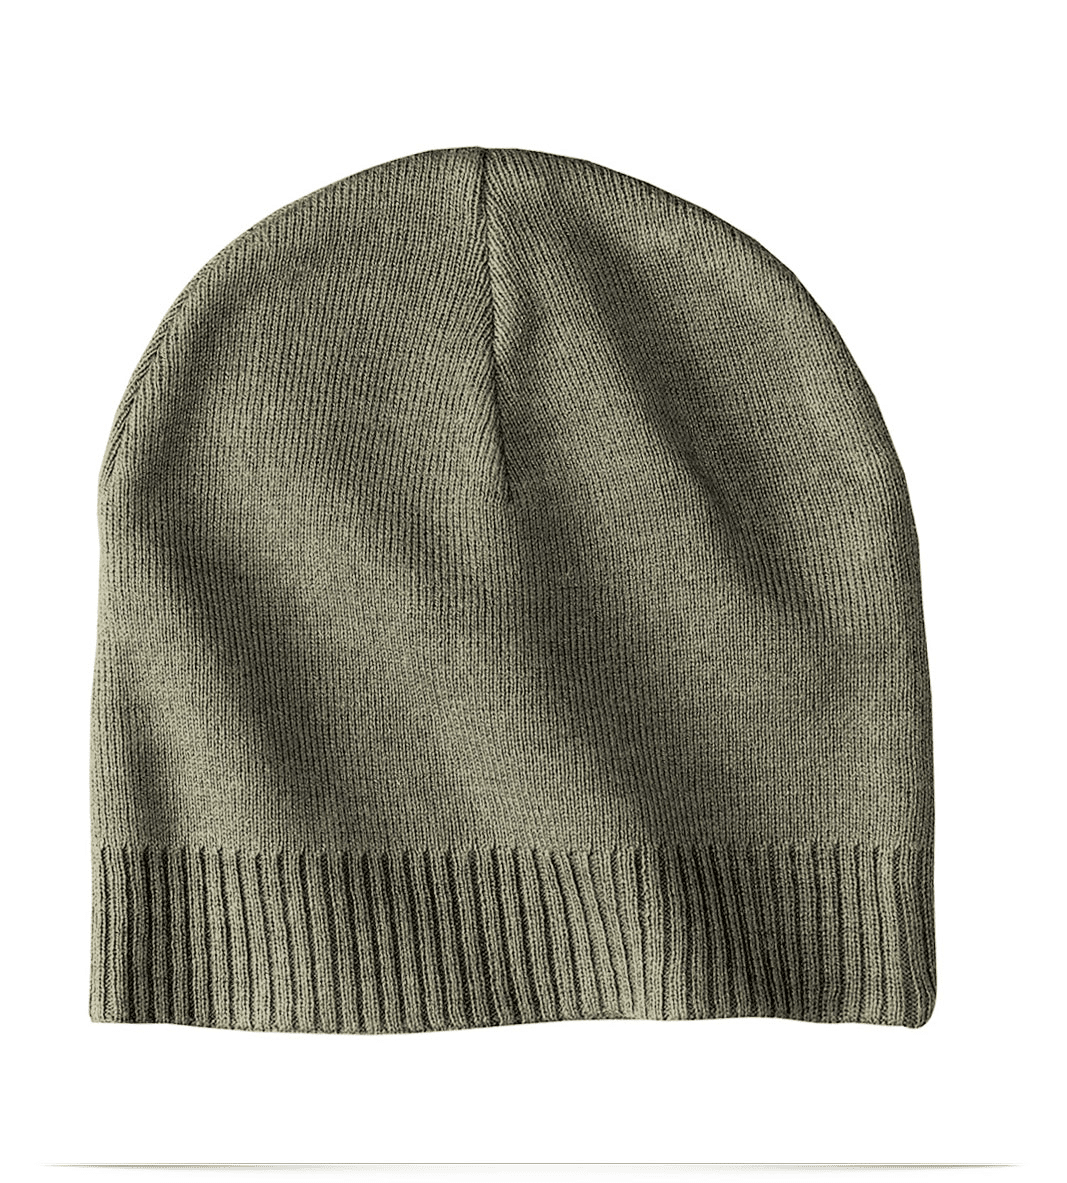 ab236092 Beanies and Knitted Hats with Custom Logo Embroidery